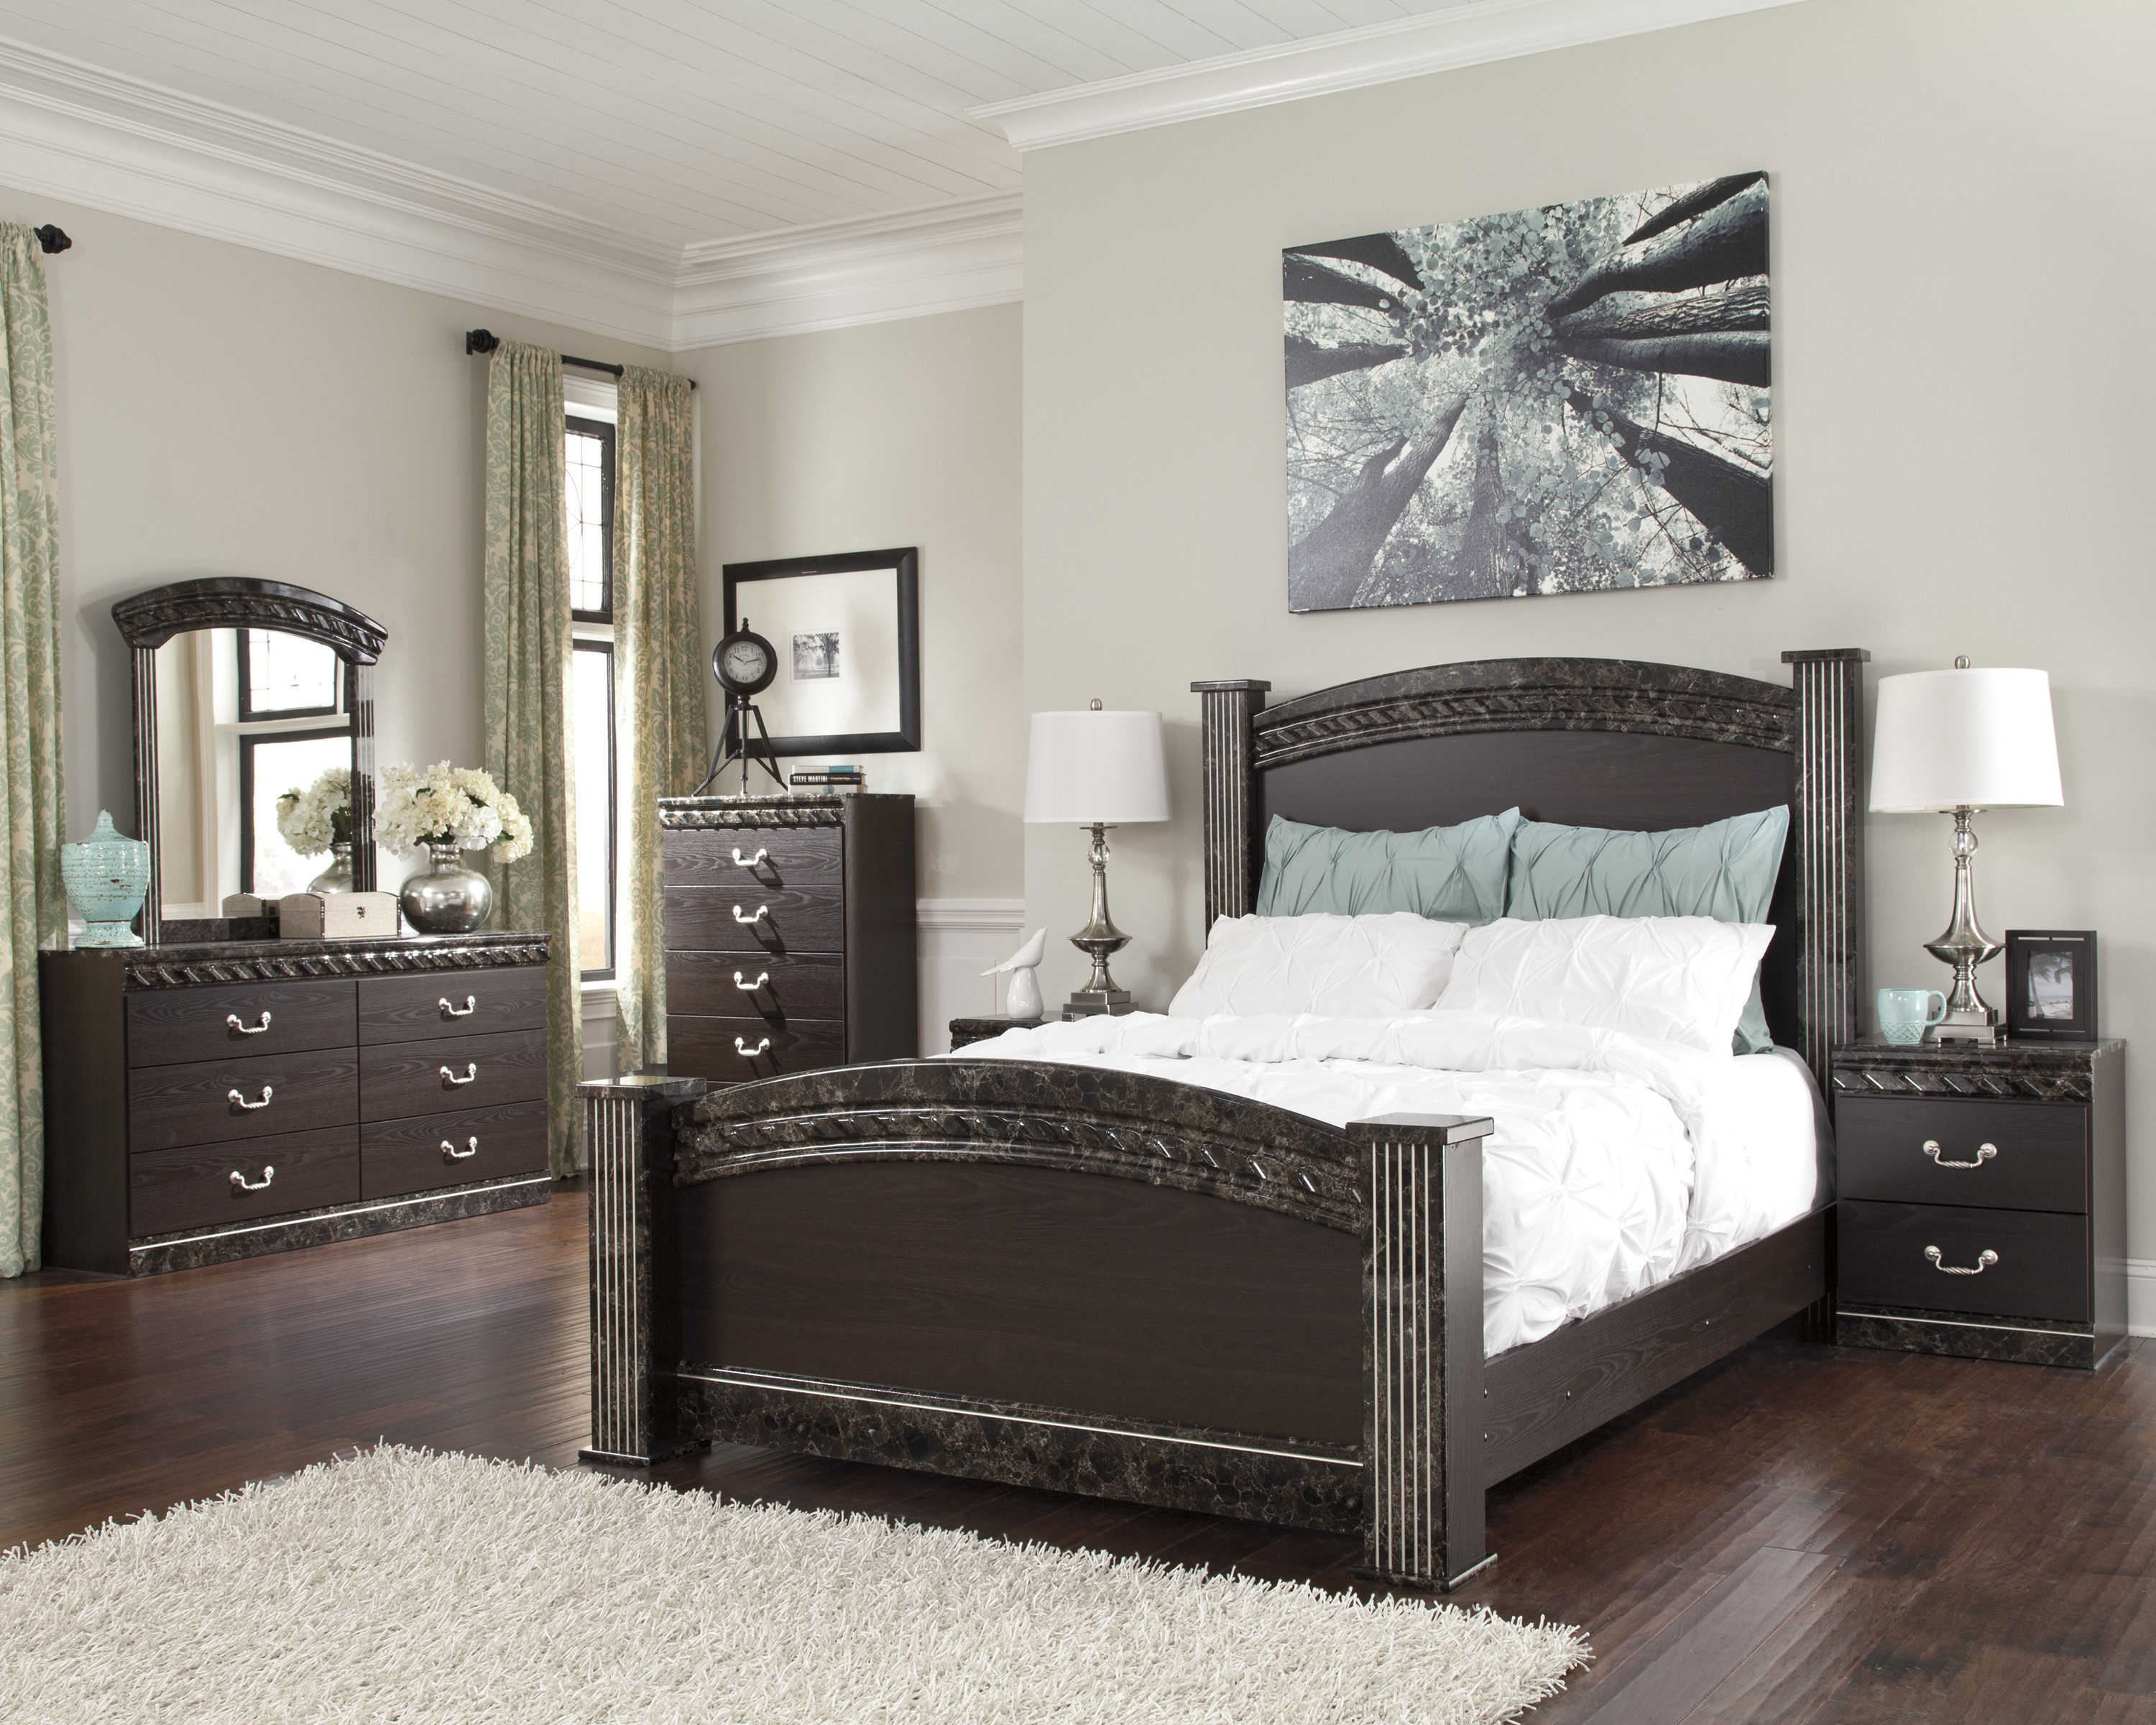 Ashley Furniture Vachel Master Bedroom Set The Classy Home